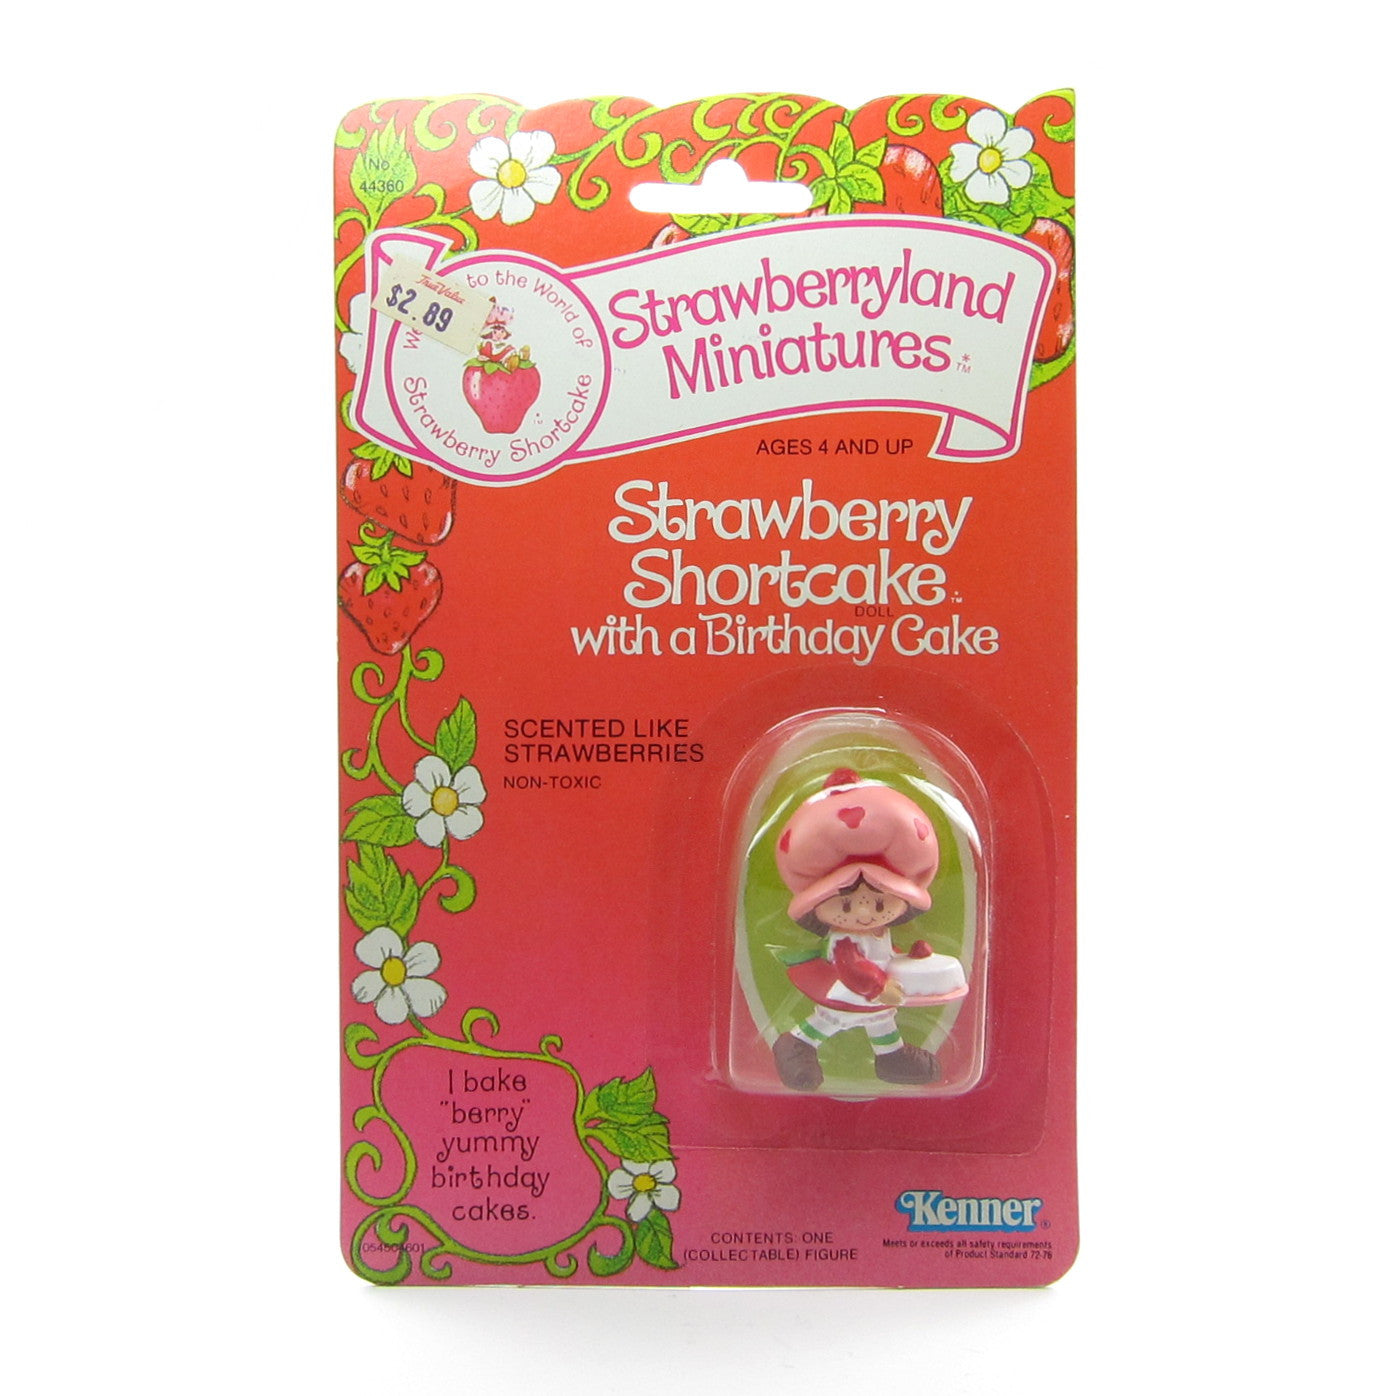 Strawberry Shortcake with a Birthday Cake Mint on Card figurine